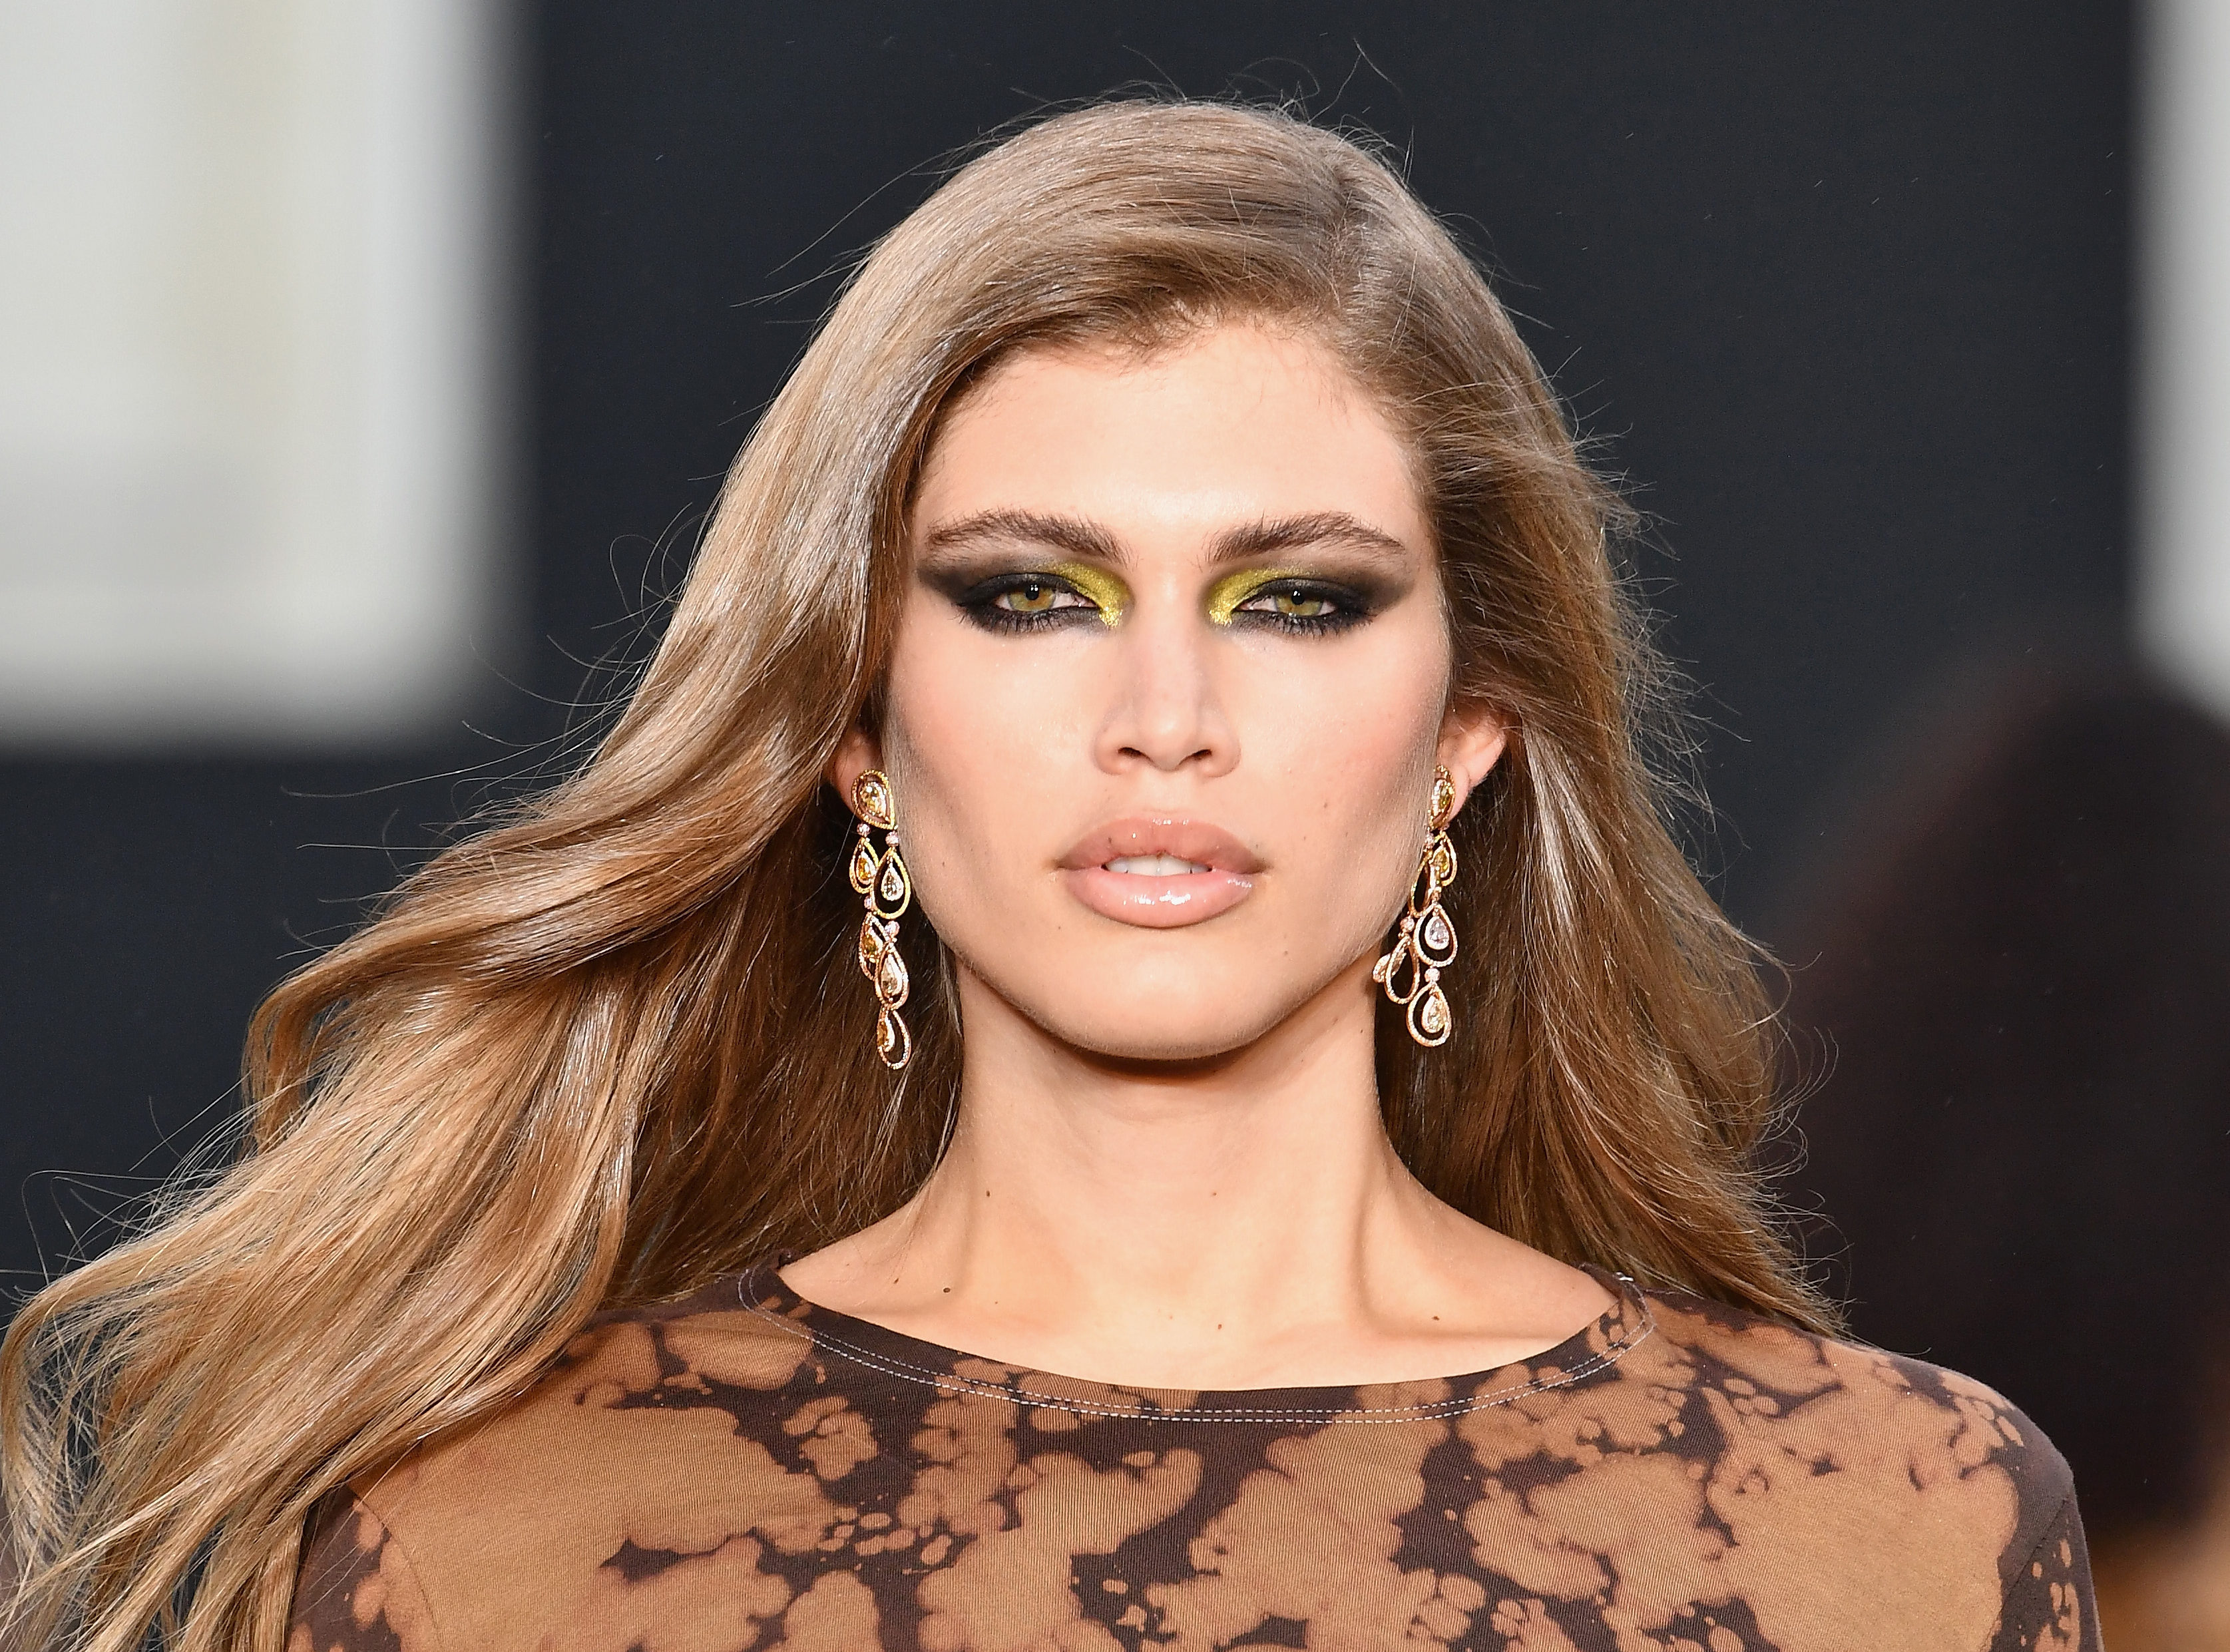 Valentina Sampaio walks the runway during Le Defile L'Oreal Paris as part of Paris Fashion Week Womenswear Spring/Summer 2018 at Avenue Des Champs Elysees on October 1, 2017 in Paris, France. (Photo by Pascal Le Segretain/Getty Images for L'Oreal Paris)